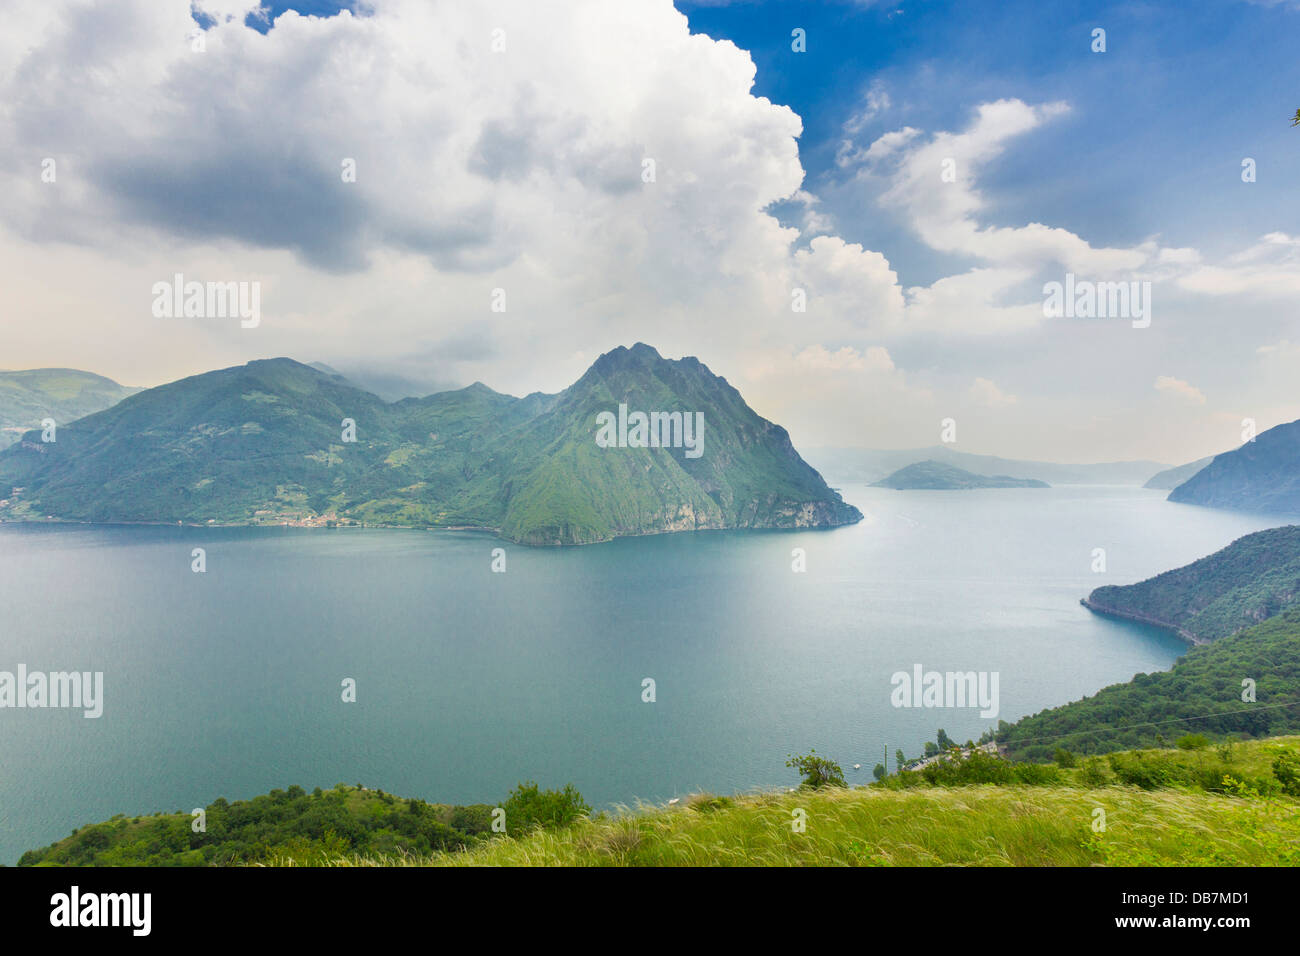 Corna Trentapassi, 1248m, and Monte Isola island in Lake Iseo or Lago d'Iseo - Stock Image